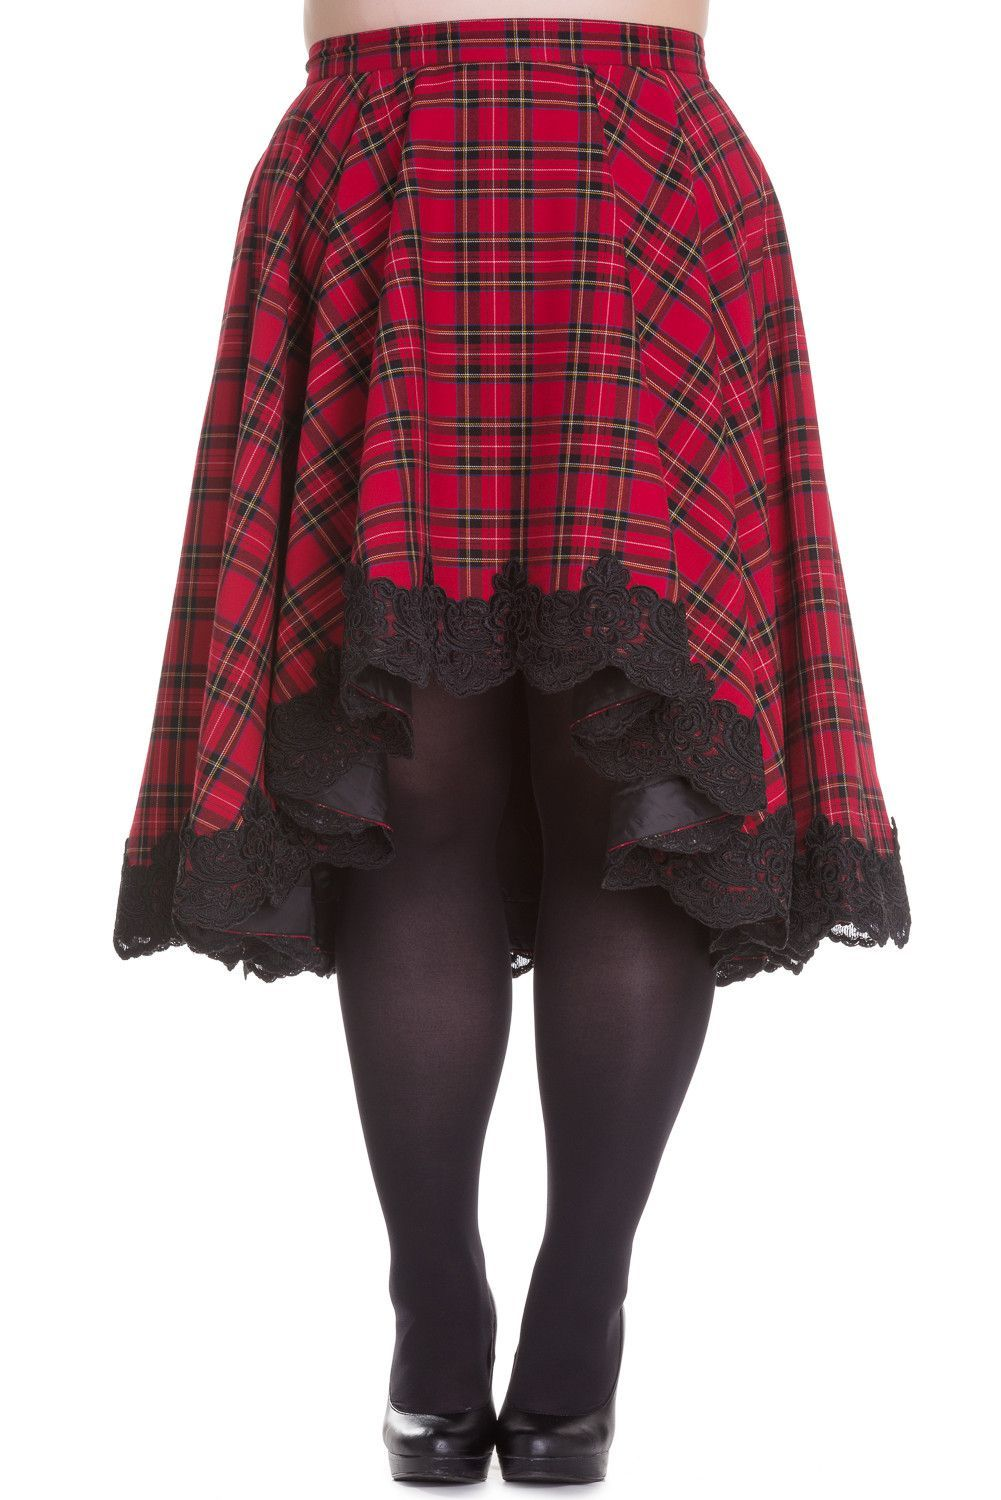 315dc63a2d21de It features London Red Royal Tartan pattern swing skirt with High-Low  design (Higher at the centre fr